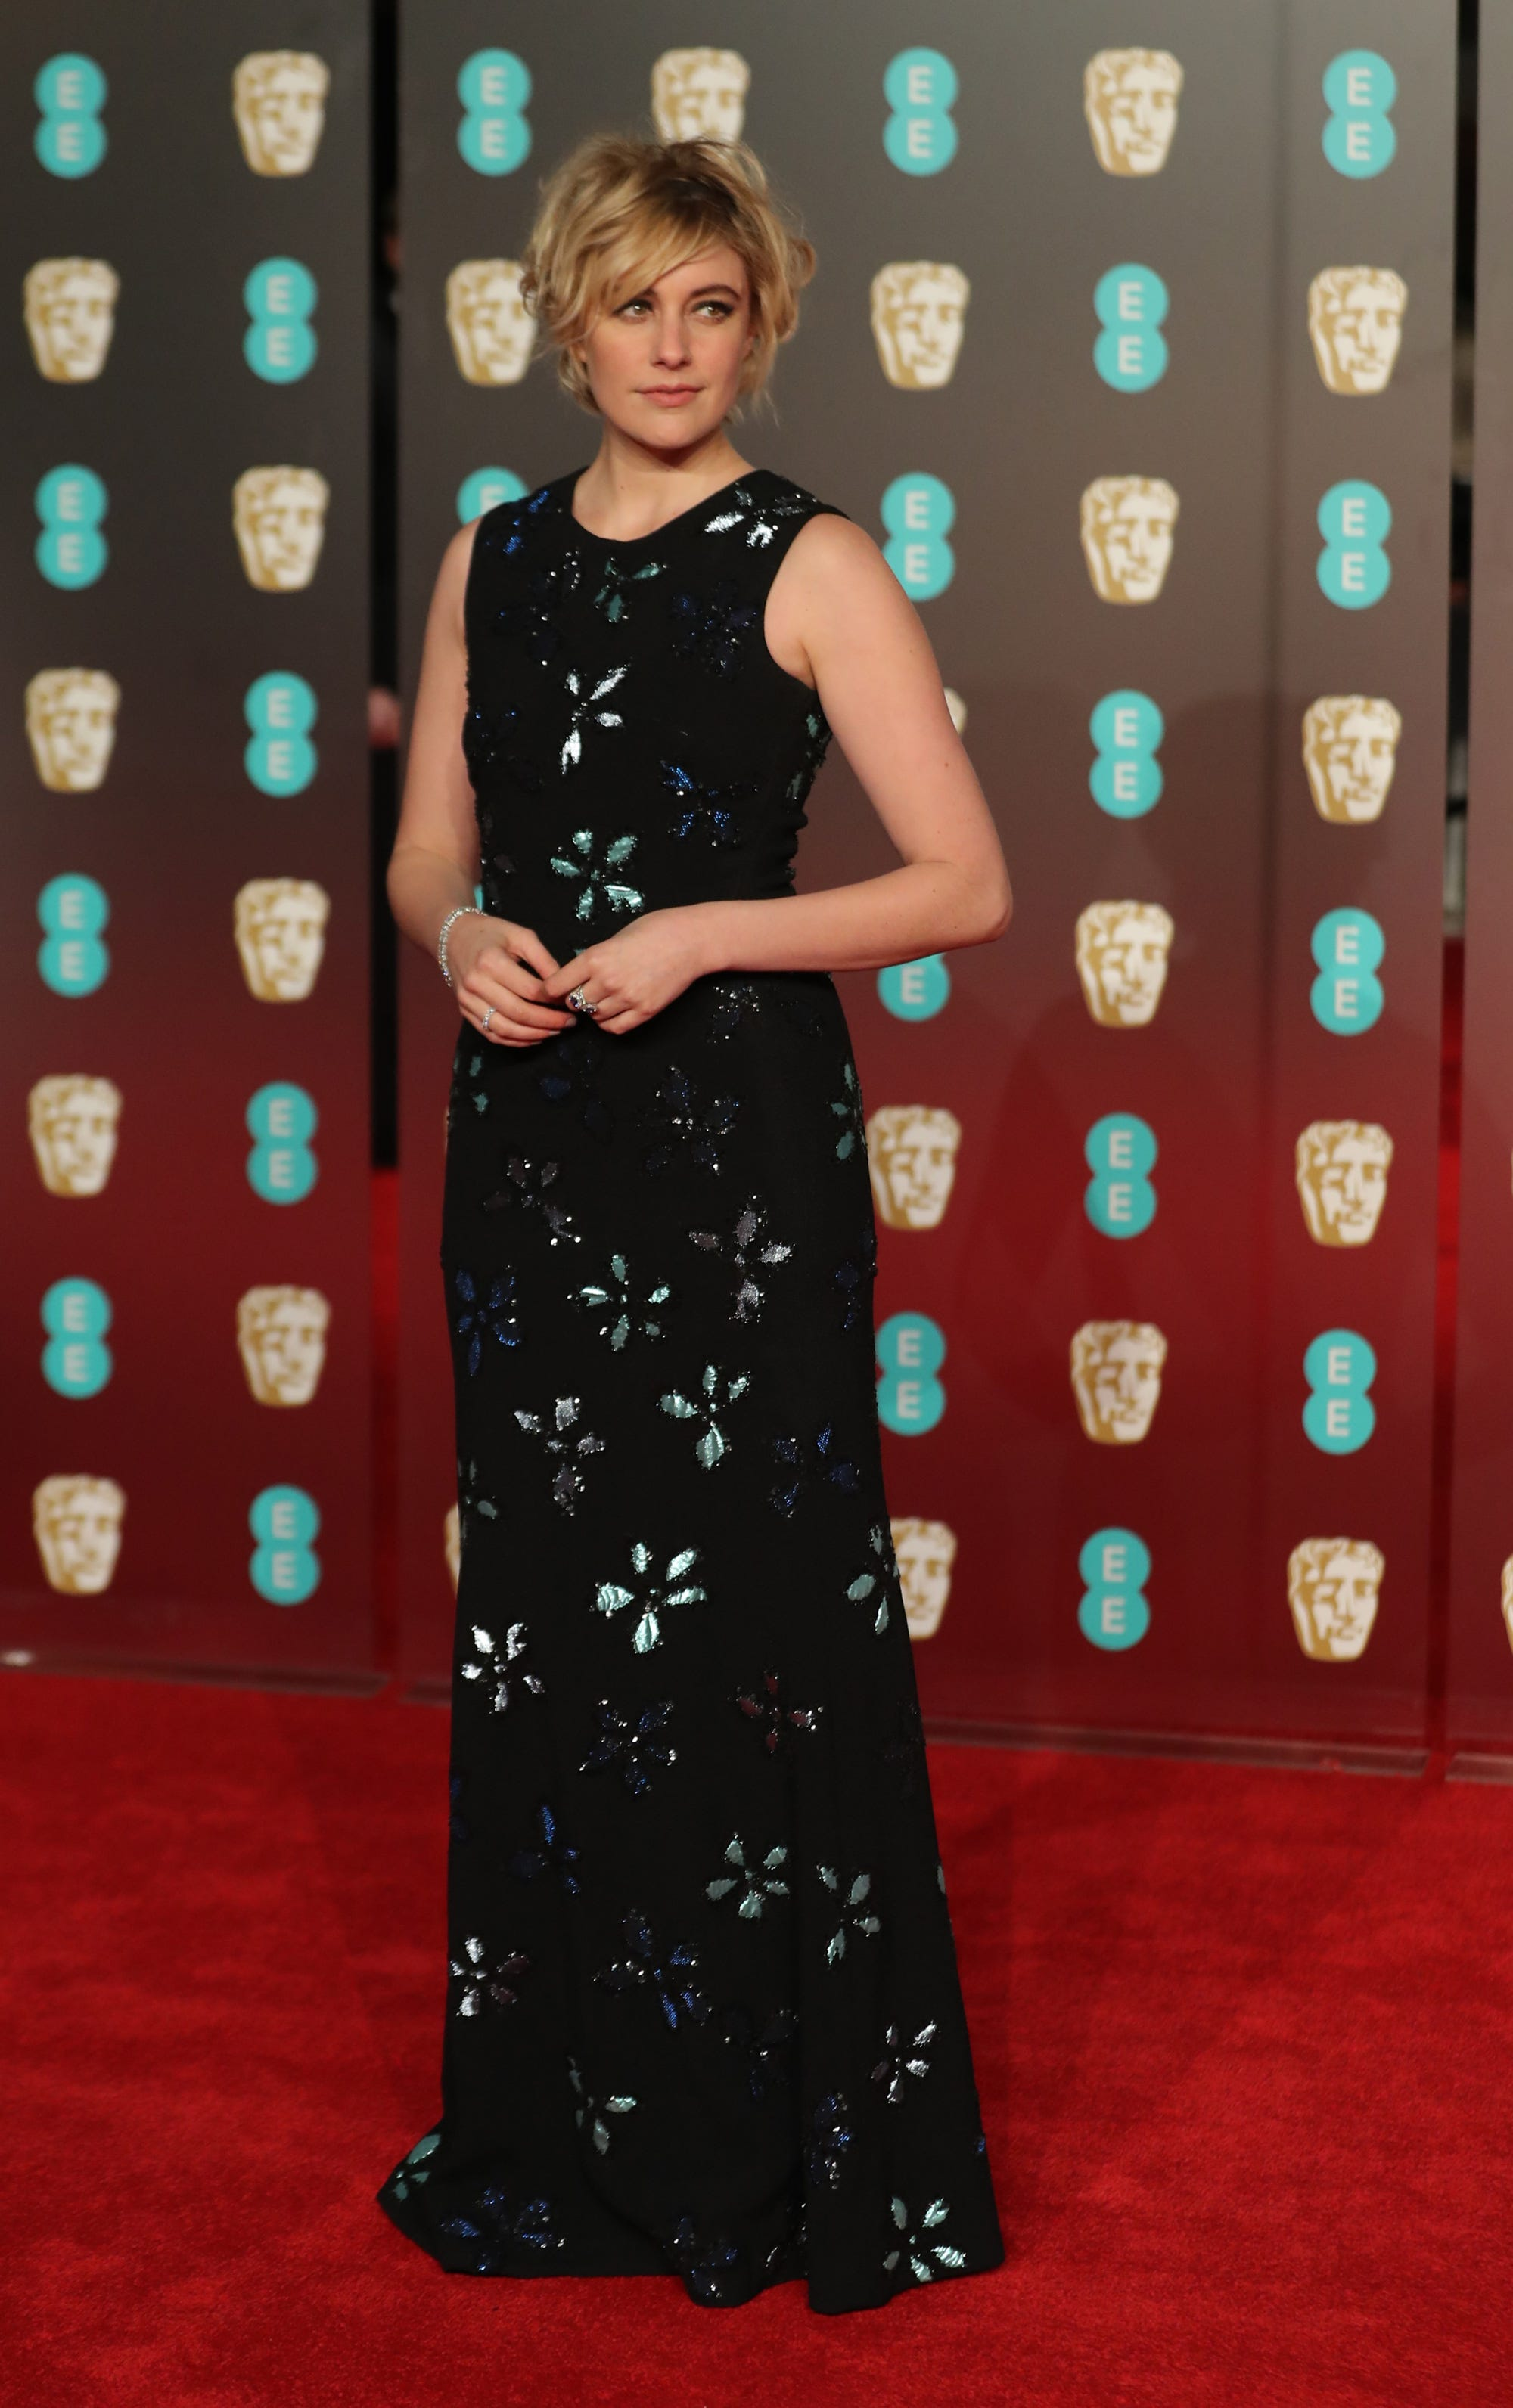 Forum on this topic: The 8 BAFTAs Looks We Can't Stop , the-8-baftas-looks-we-cant-stop/